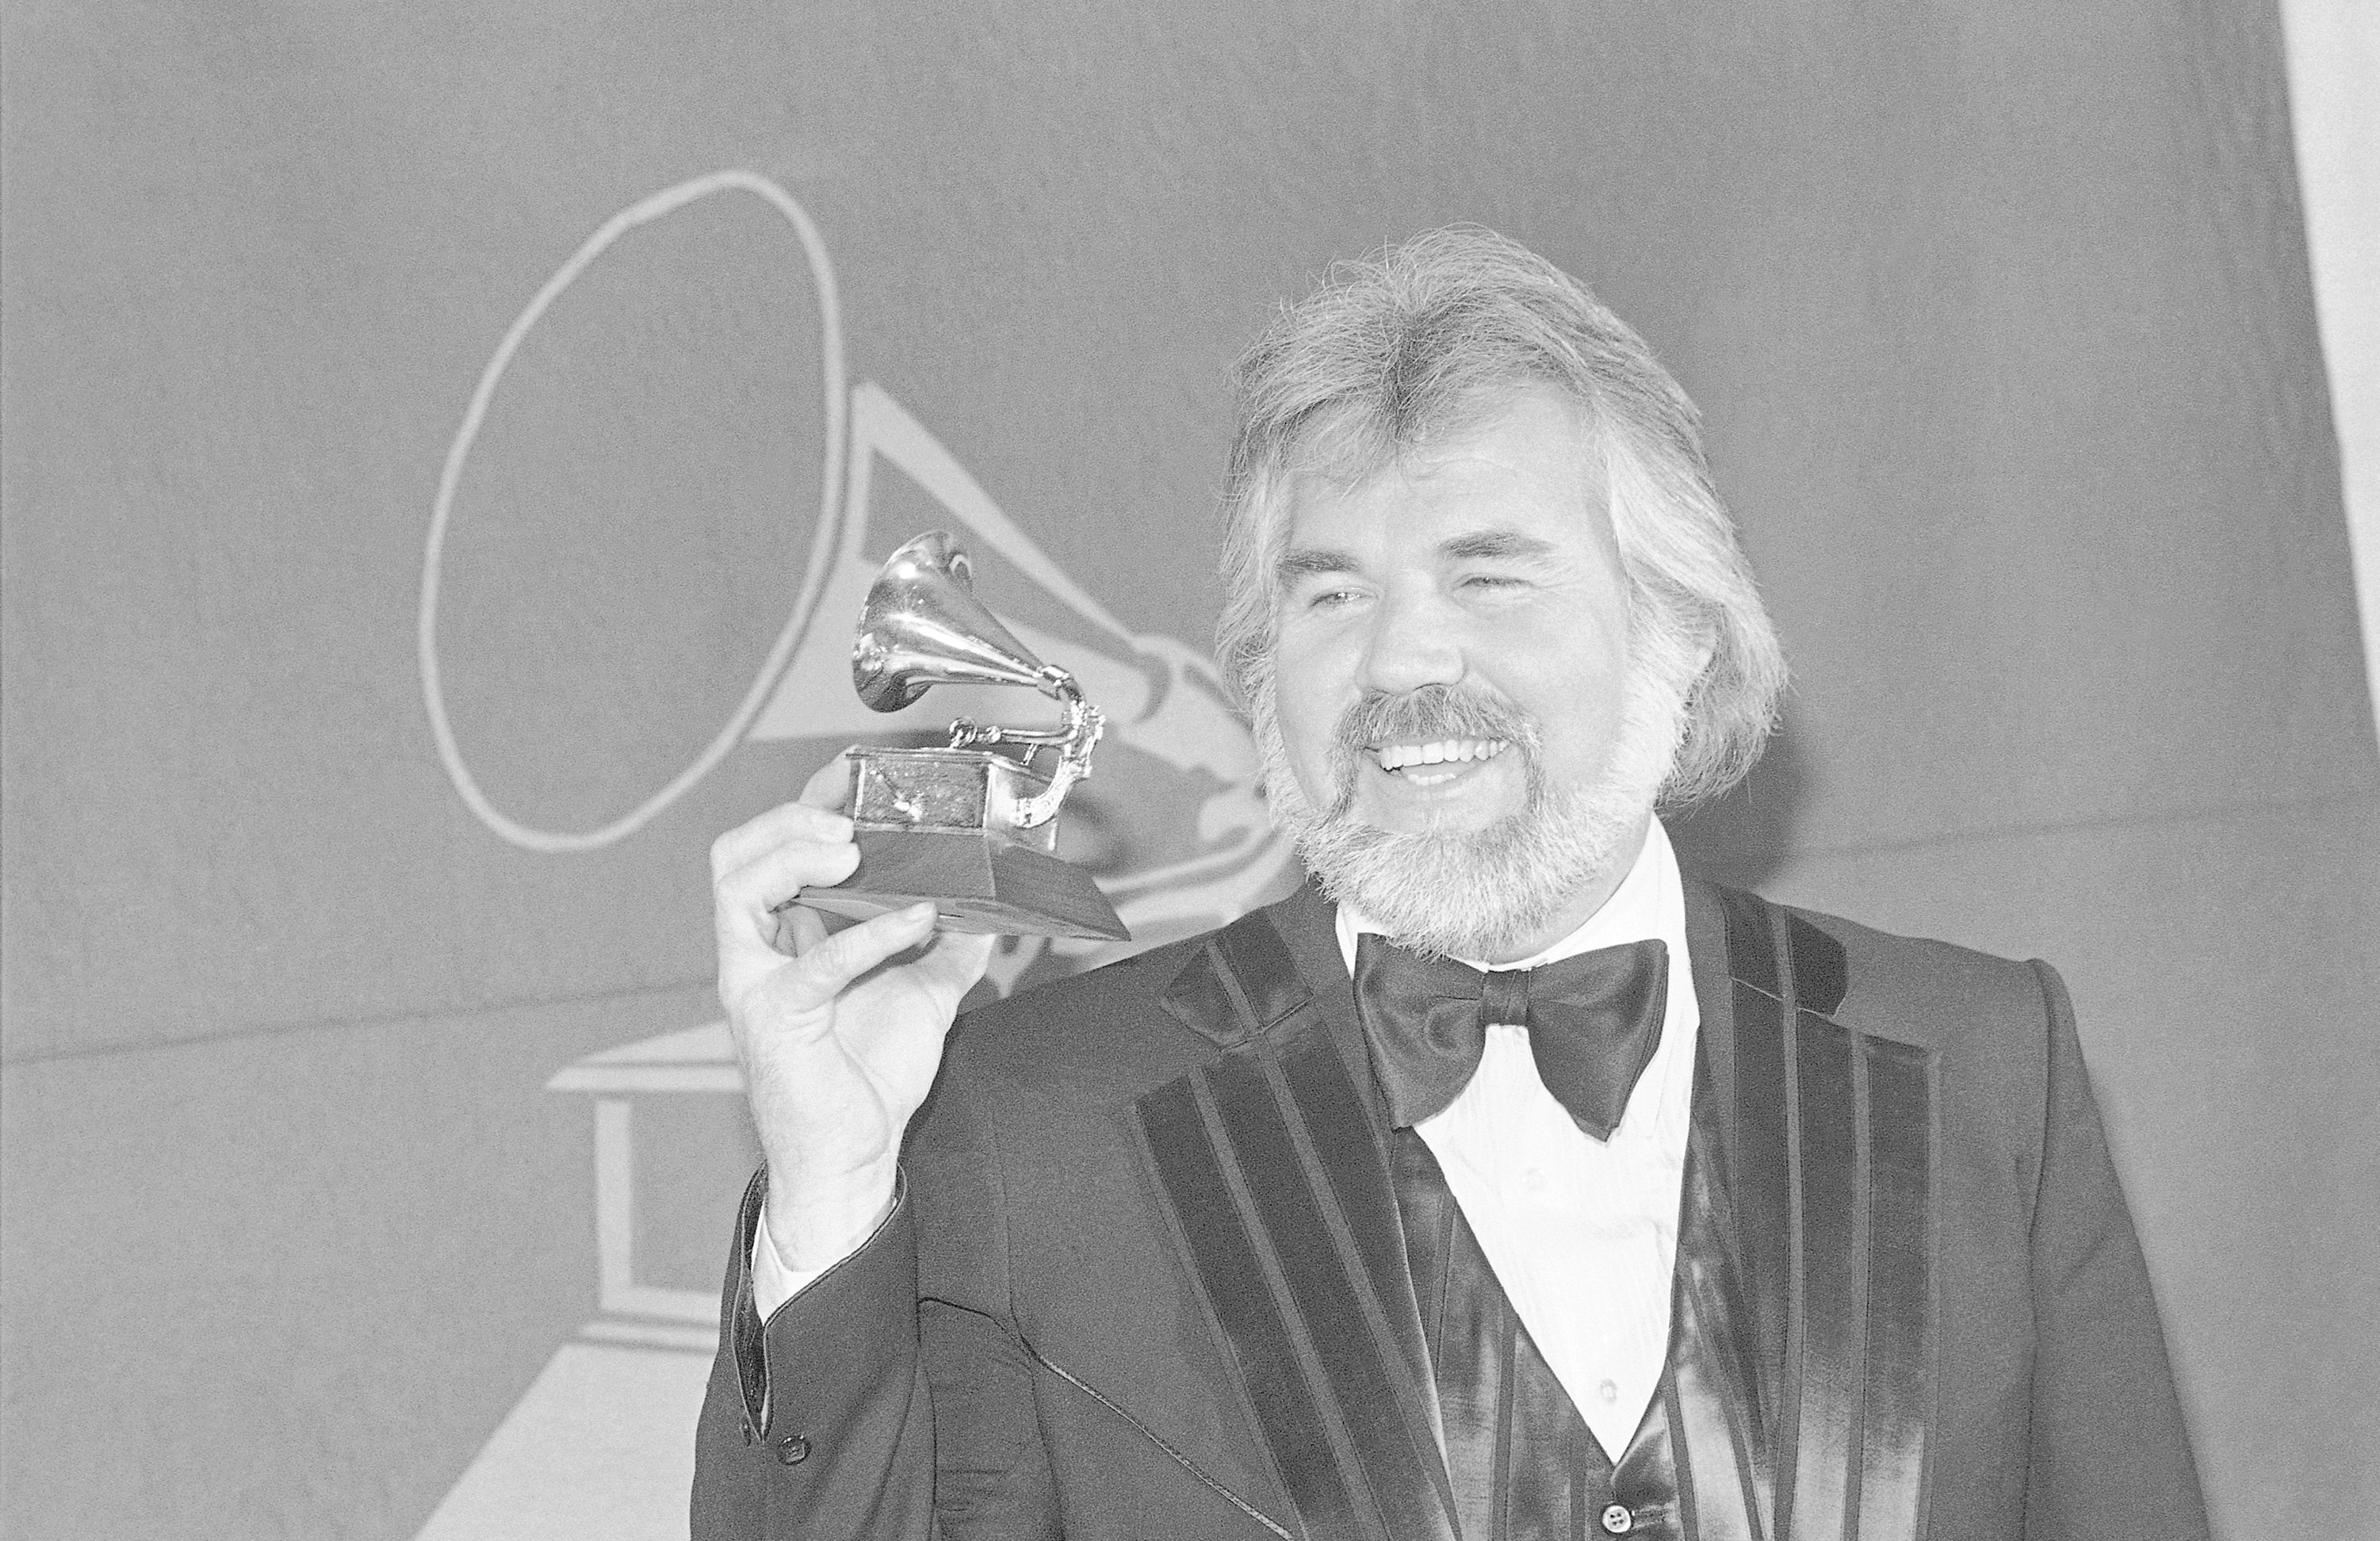 Entertainer Kenny Rogers holds Grammy Award he received in Los Angeles in 1980 for best country male performance for his hit THE GAMBLER - Kenny Rogers Retrospective